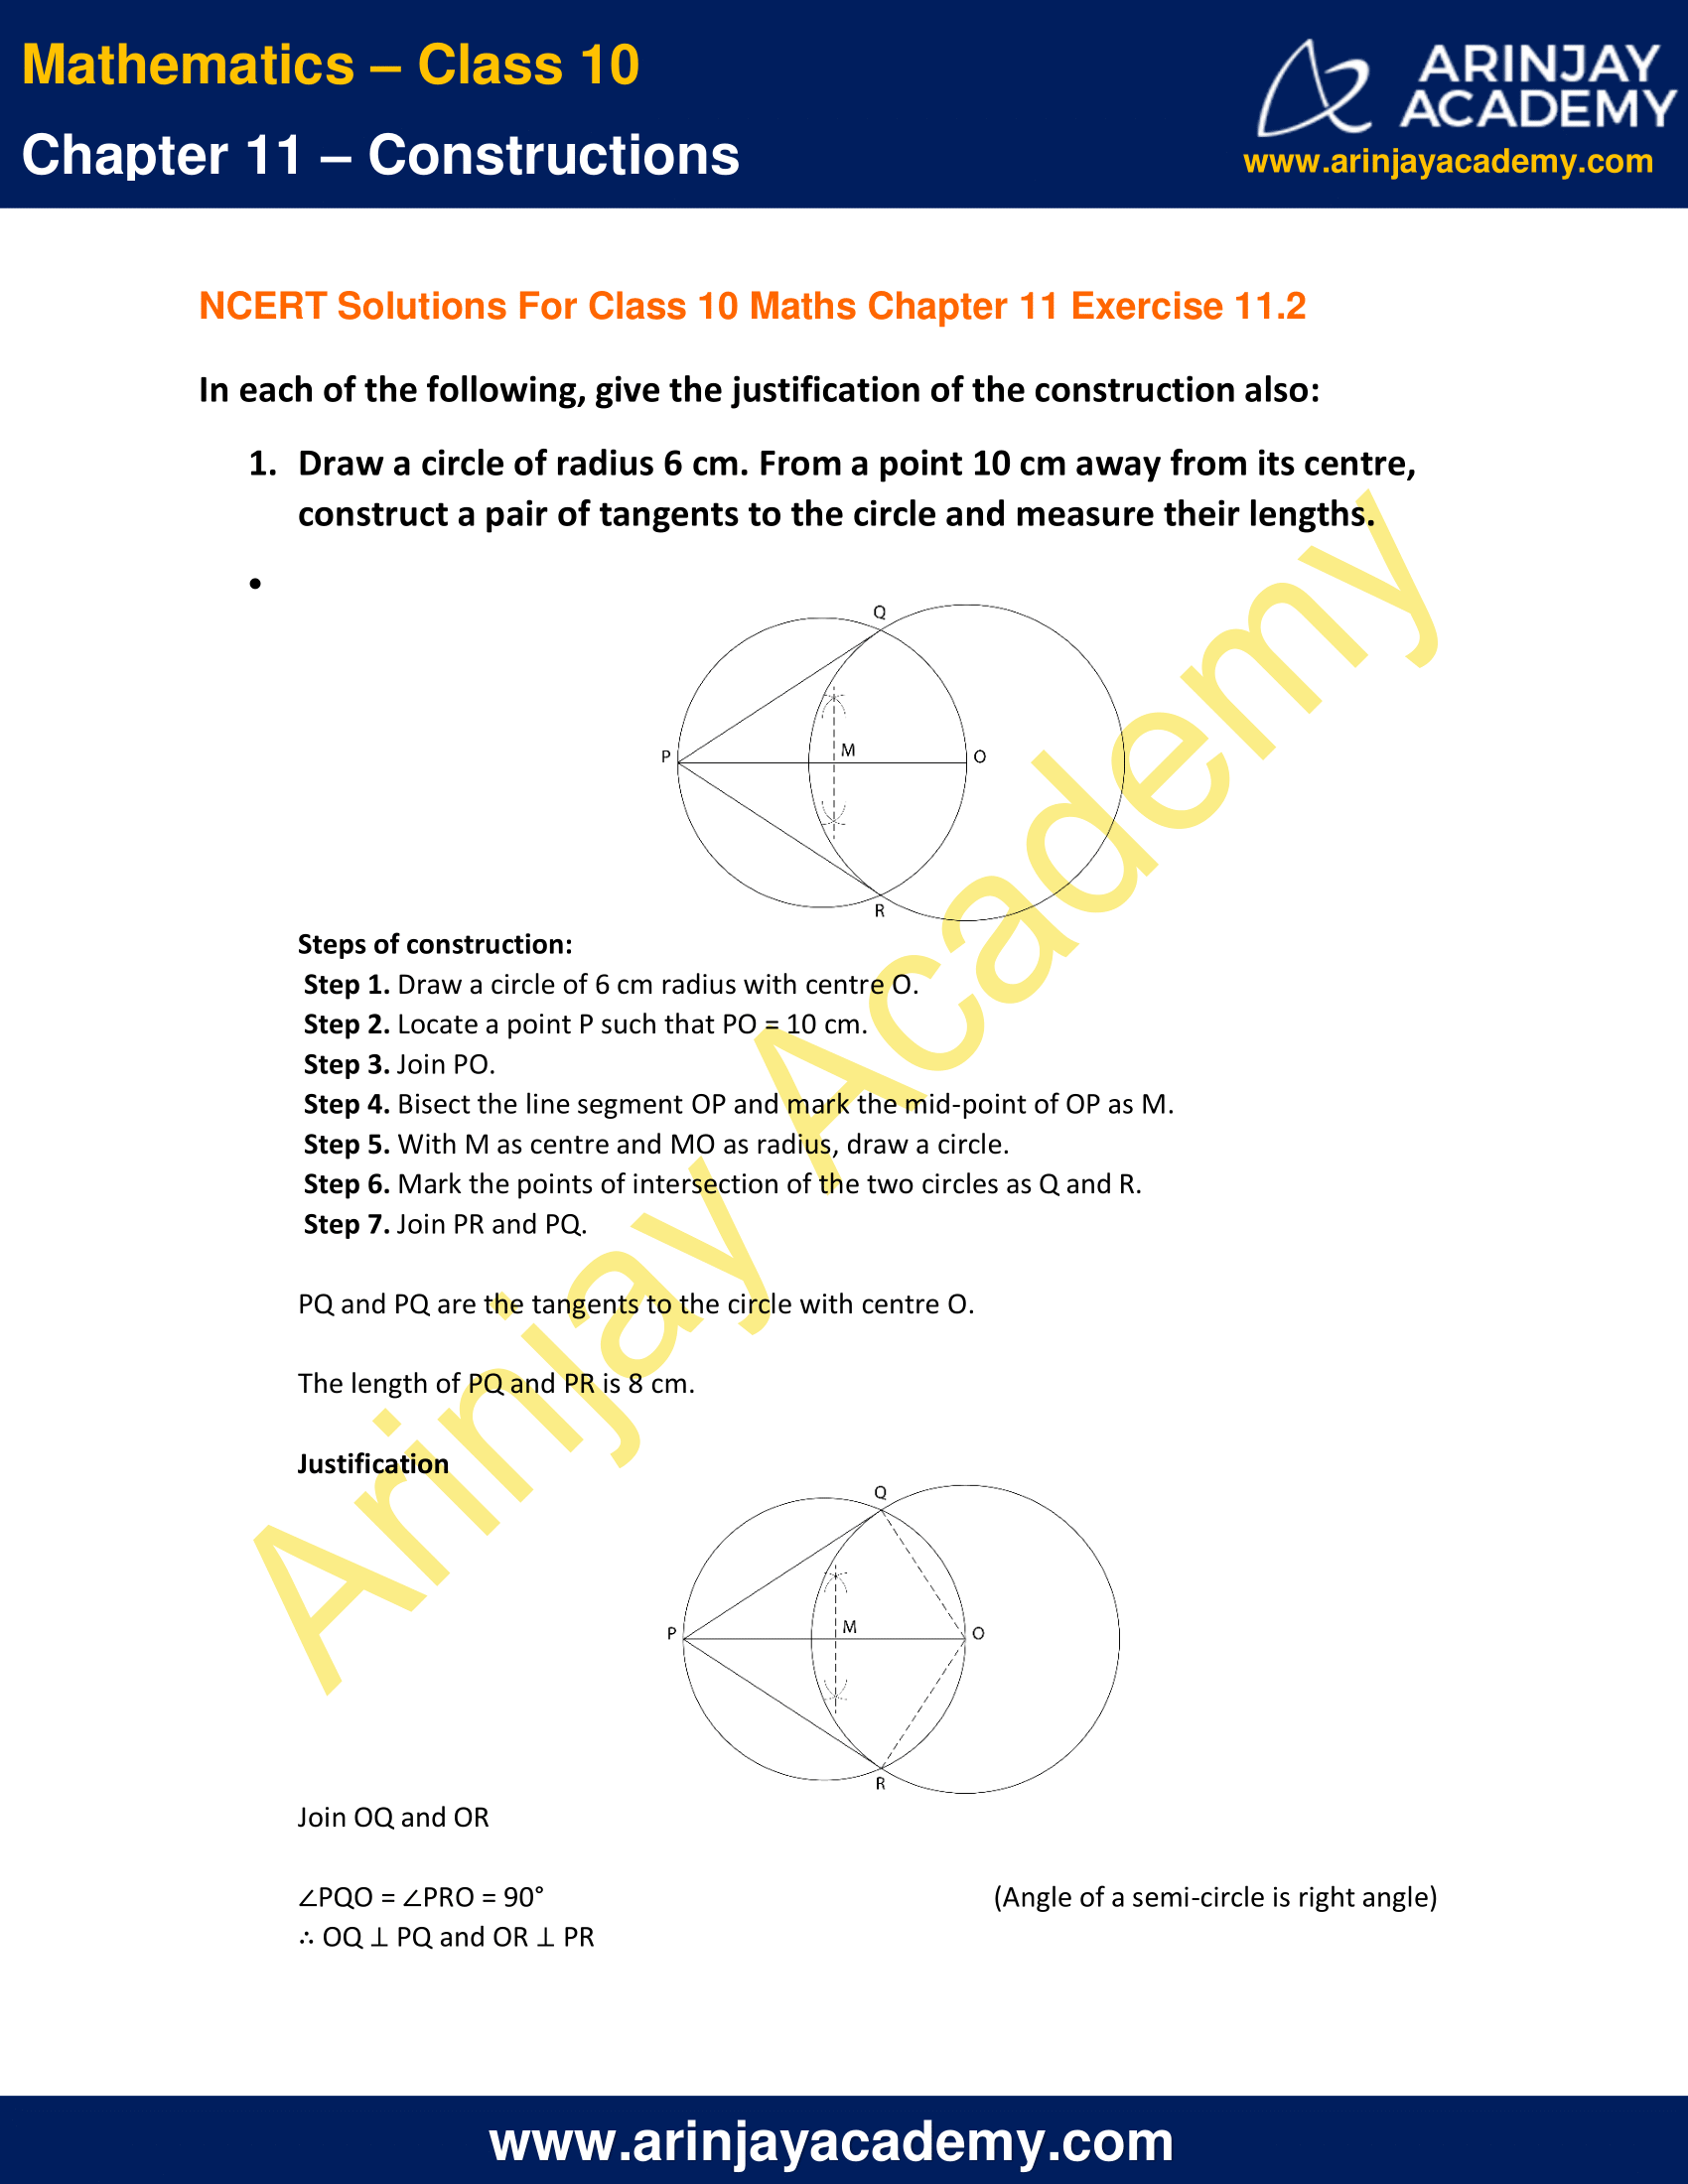 NCERT Solutions For Class 10 Maths Chapter 11 Exercise 11.2 image 1